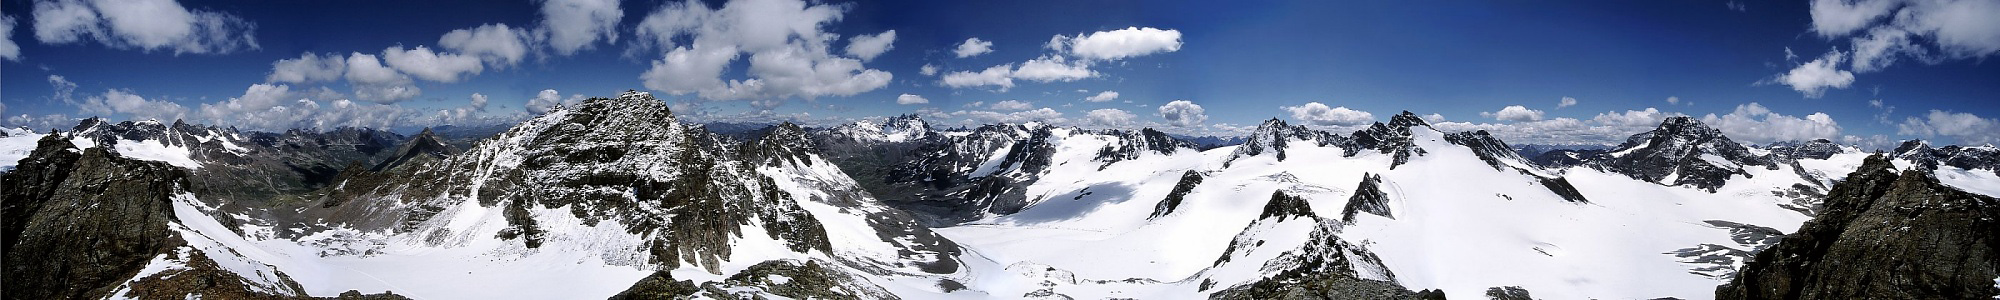 Silvretta panorama from the Ochsenkopf